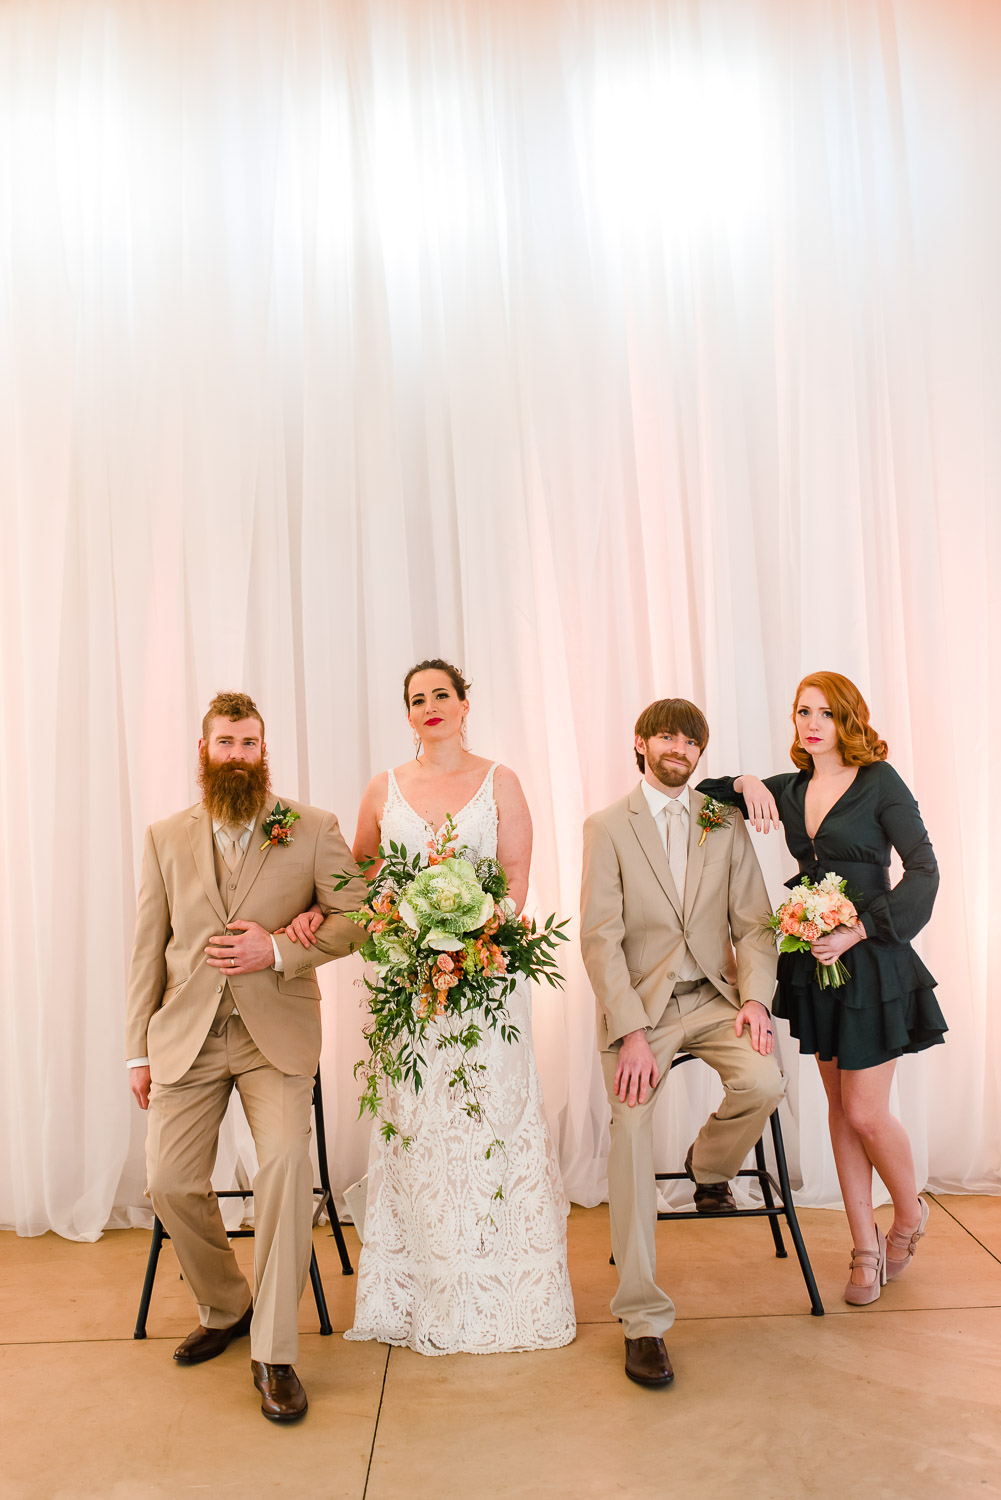 wedding party posed on tall stools in front of white draping with pink uplighting at Hiwassee river weddings